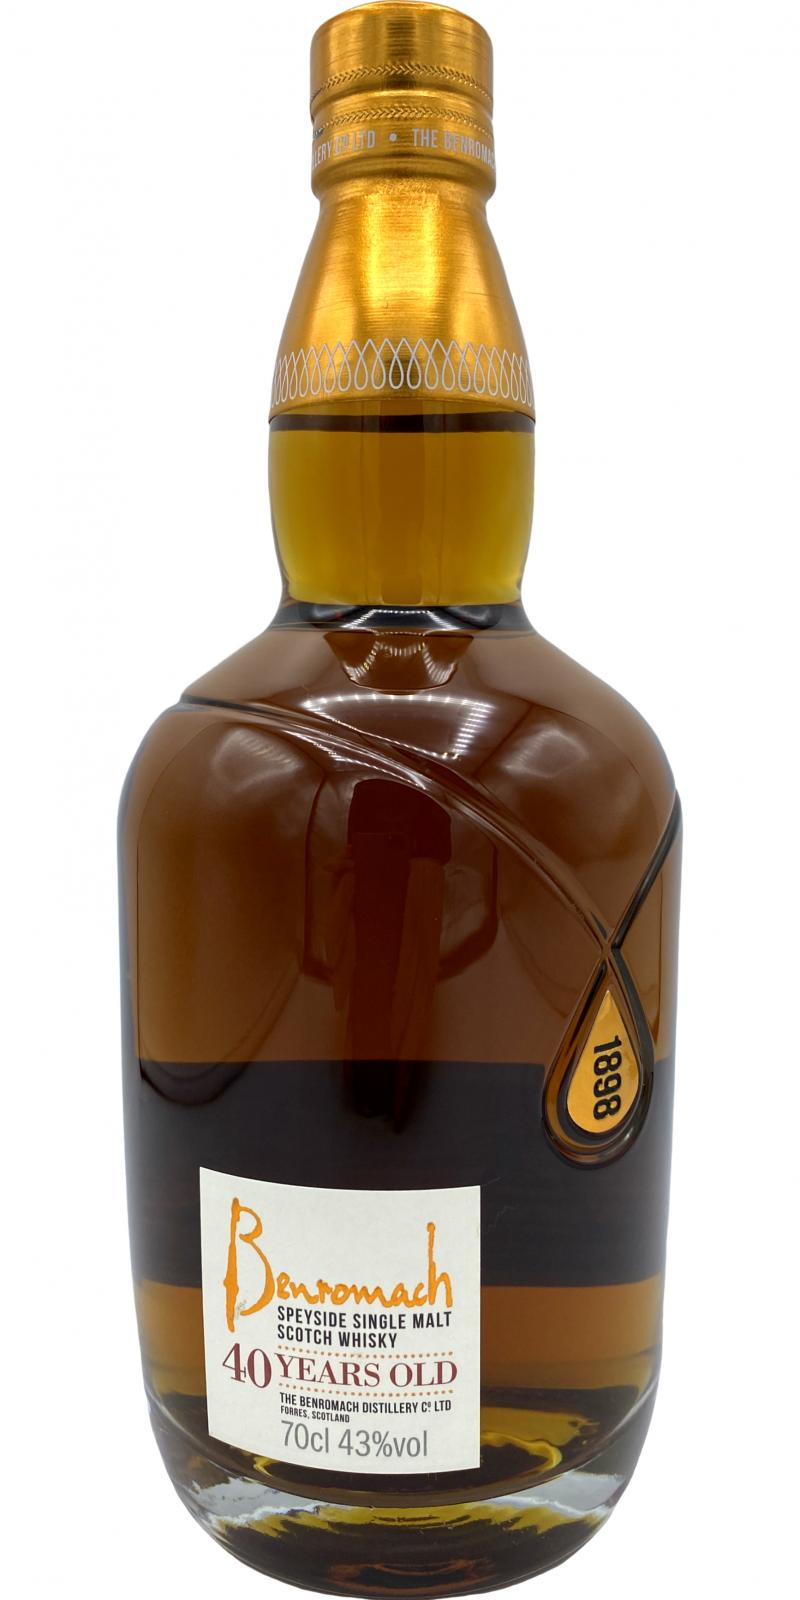 Benromach 40-year-old